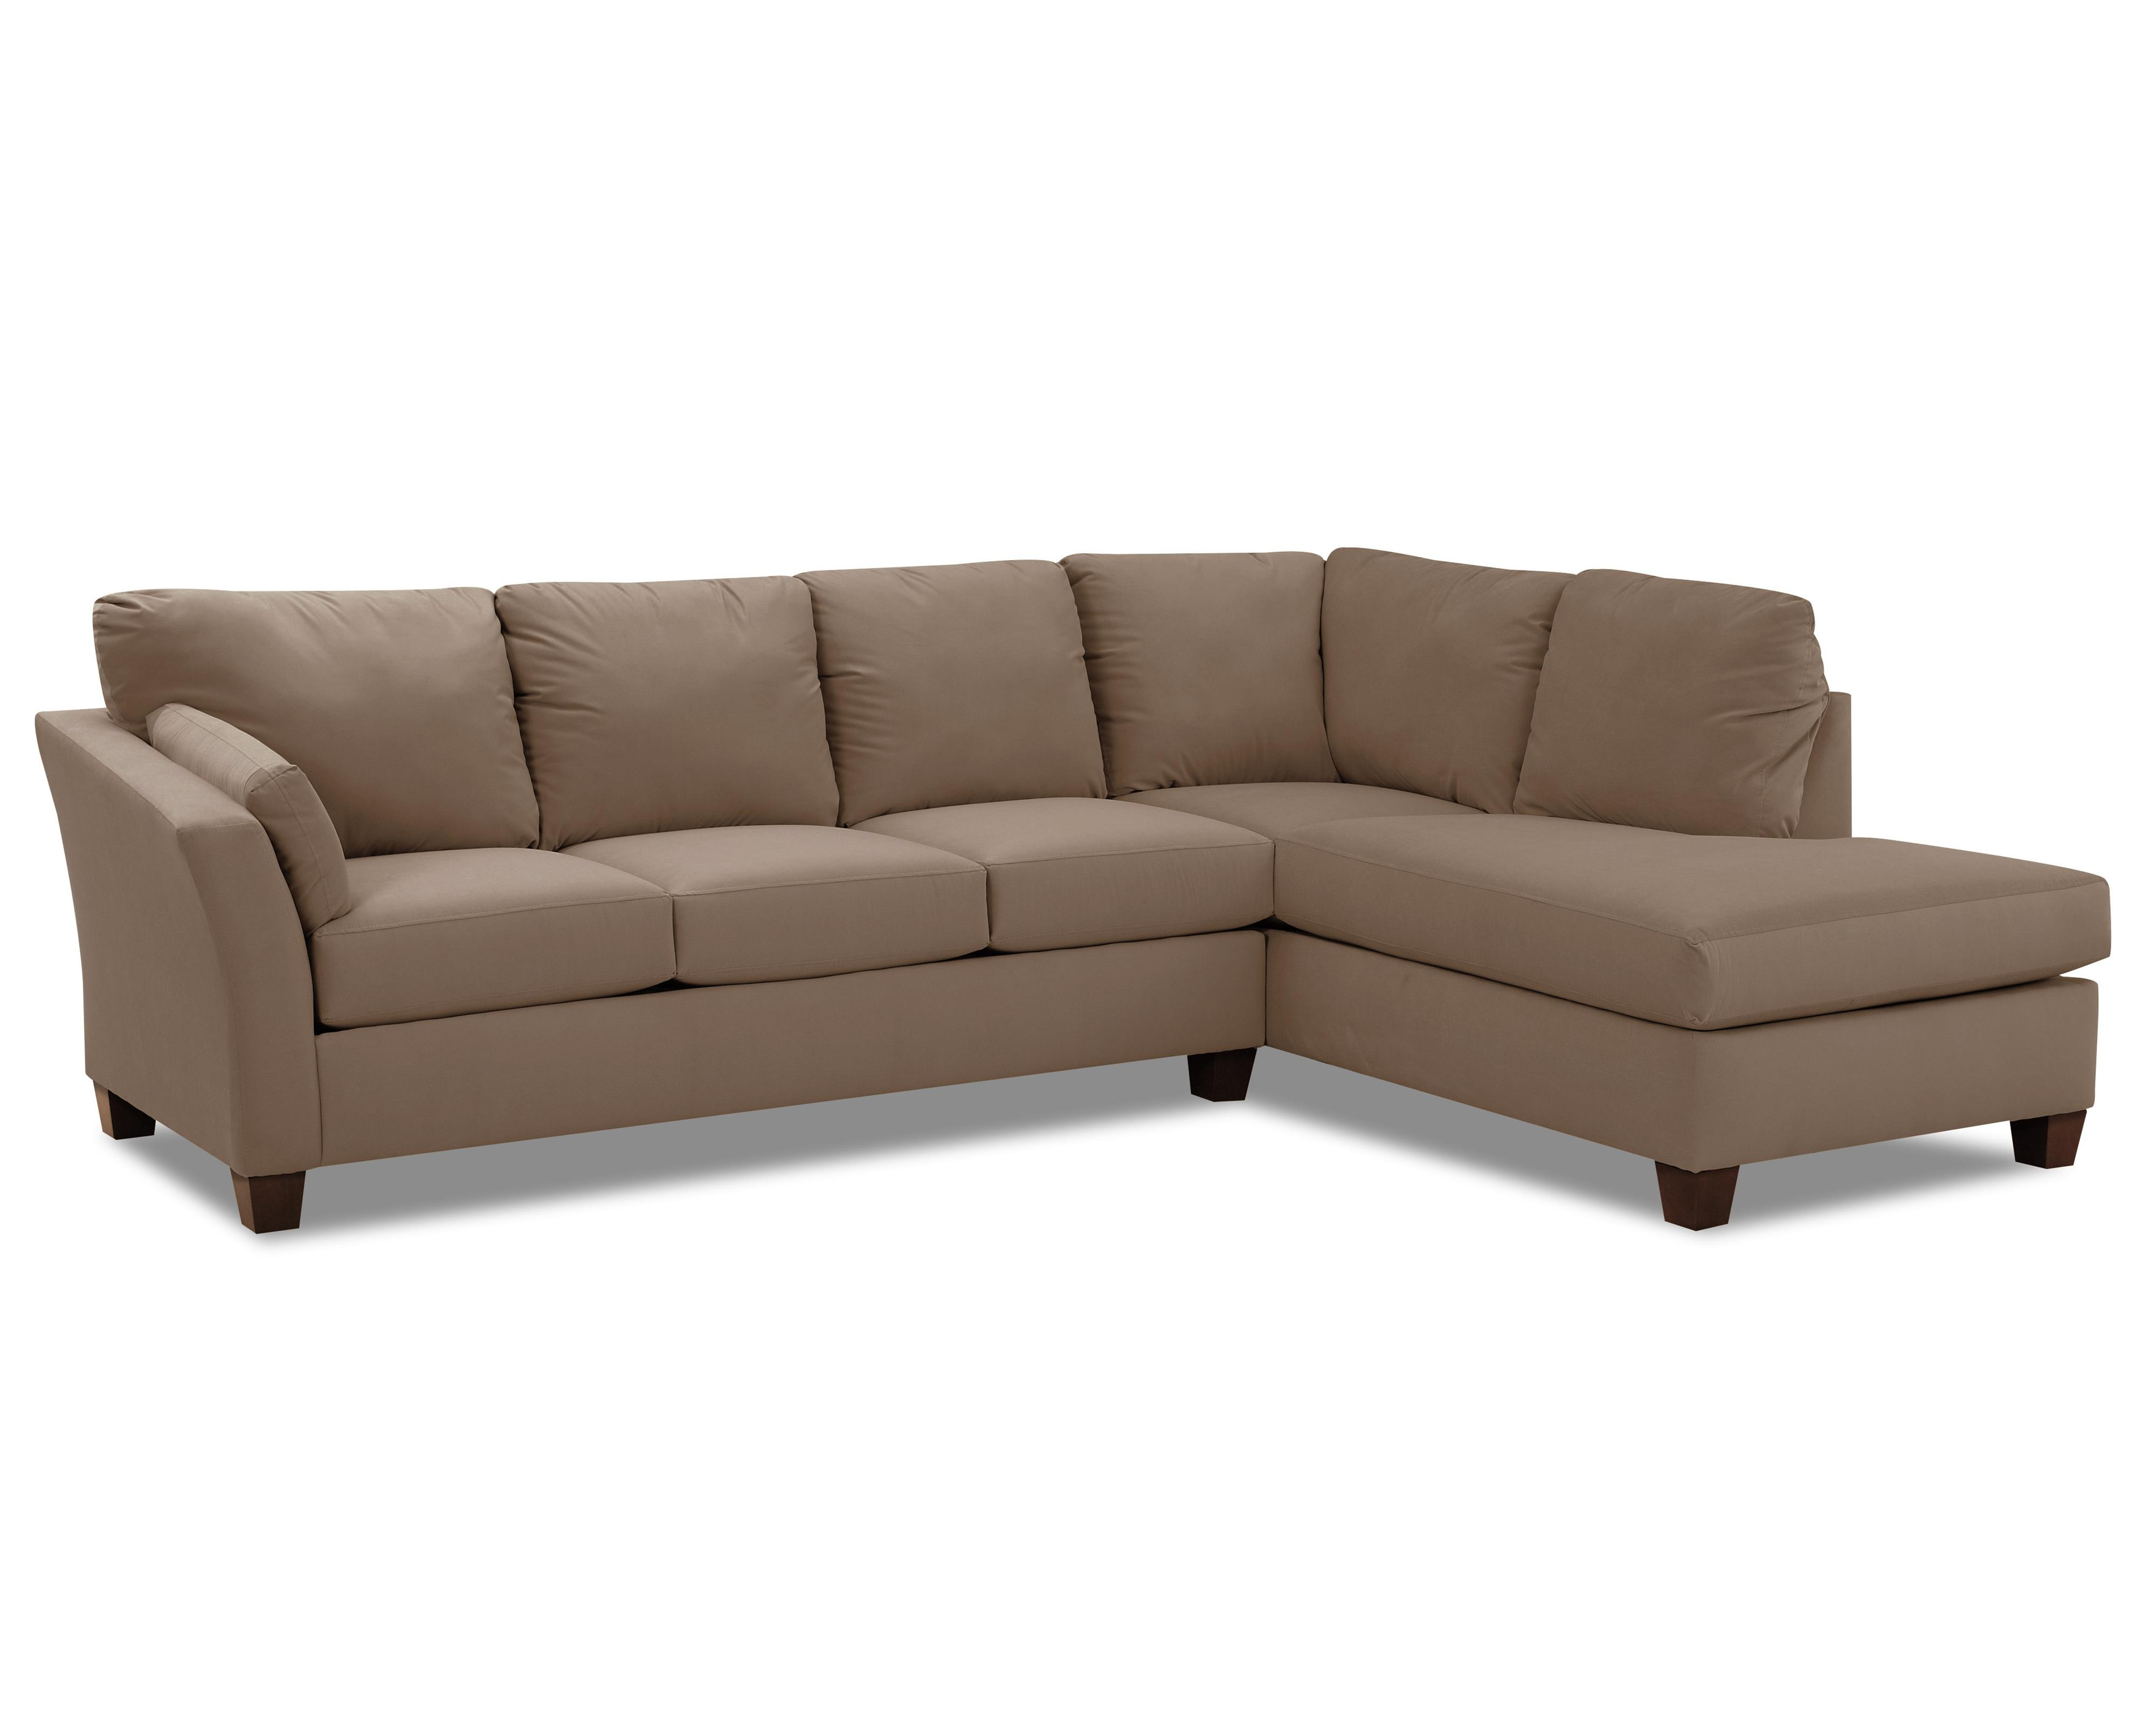 Klaussner Drew Two Piece Sectional Sofa - Item Number: E16LS+E16RCHASE-LibreEarth